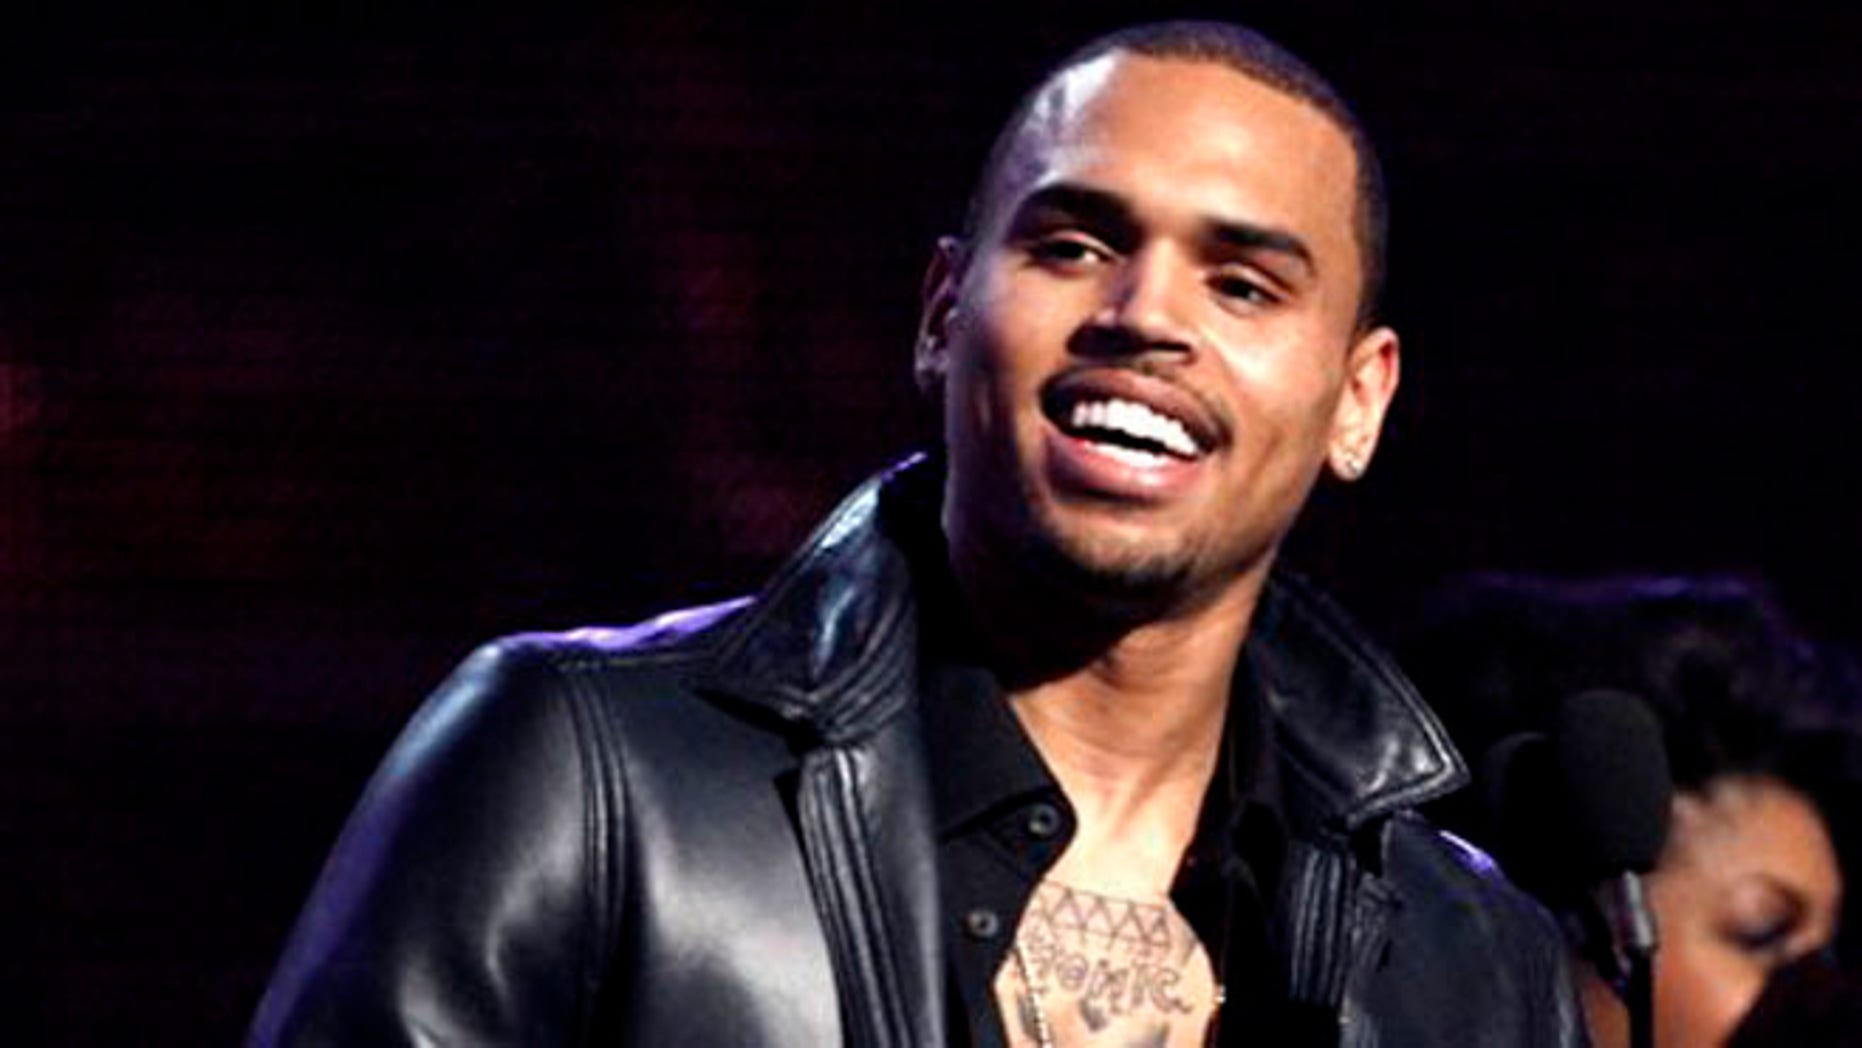 """Feb. 12, 2012: In this file photo, Chris Brown accepts the award for best R&B album for """"F.A.M.E."""" during the 54th annual Grammy Awards in Los Angeles."""